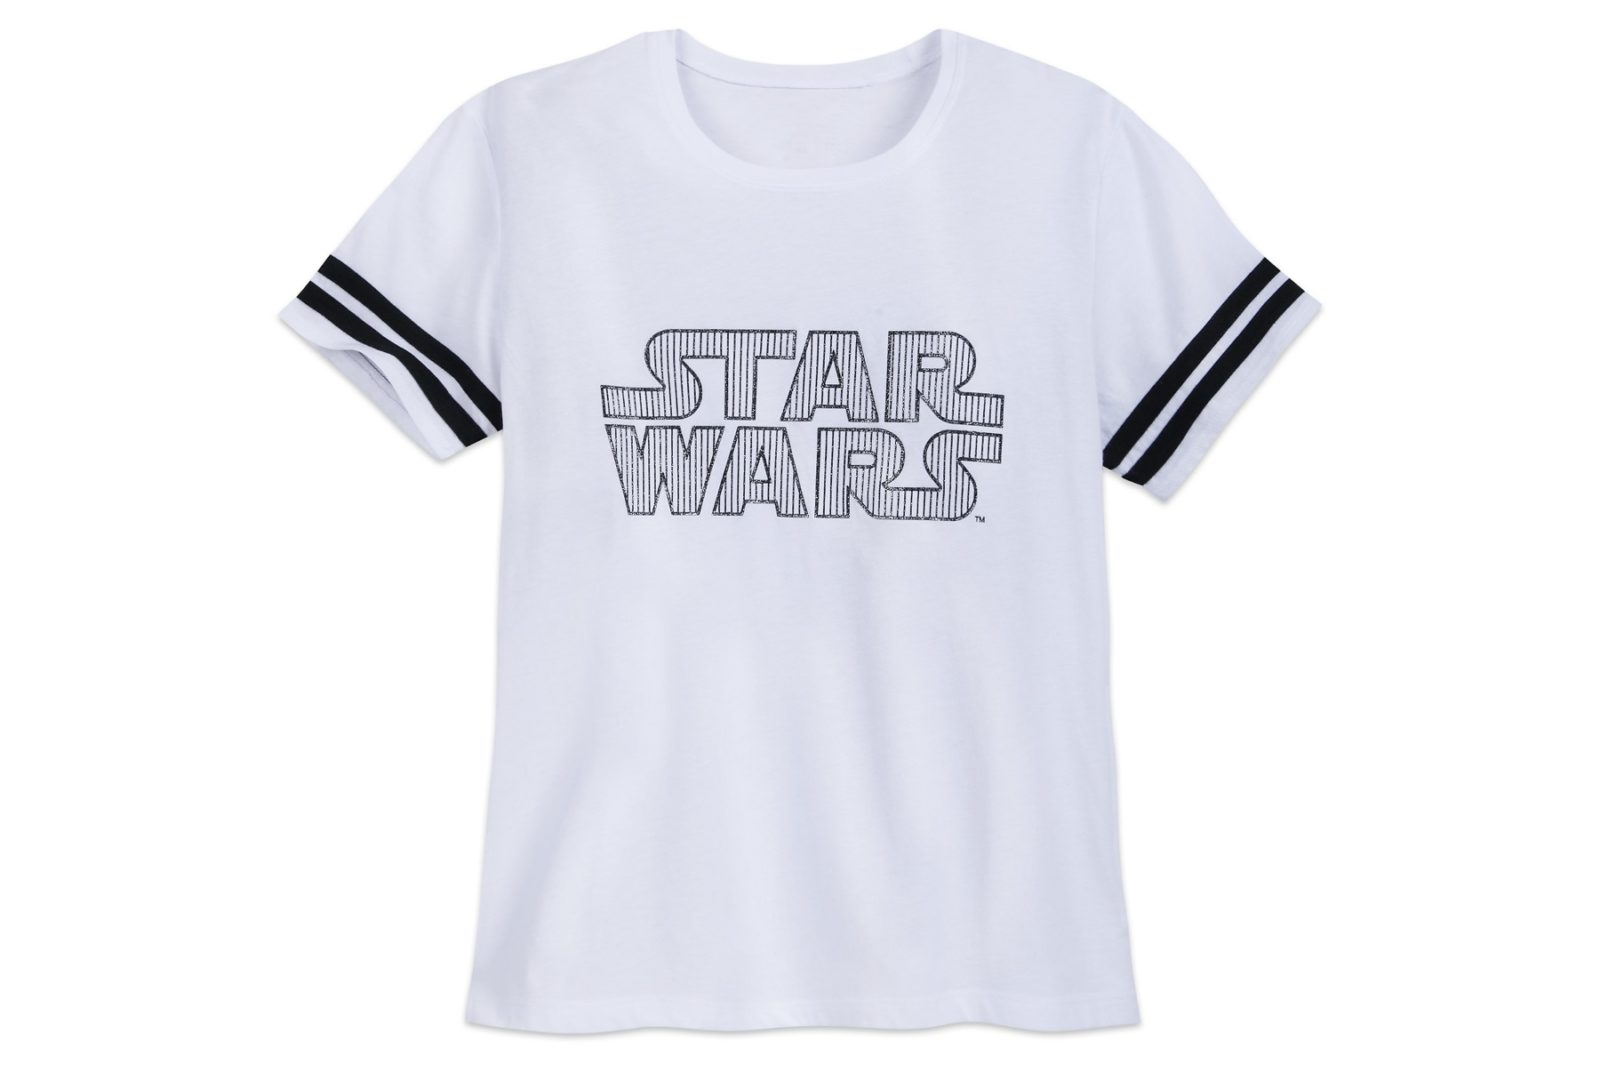 New Women's Star Wars Glitter Logo T-Shirt